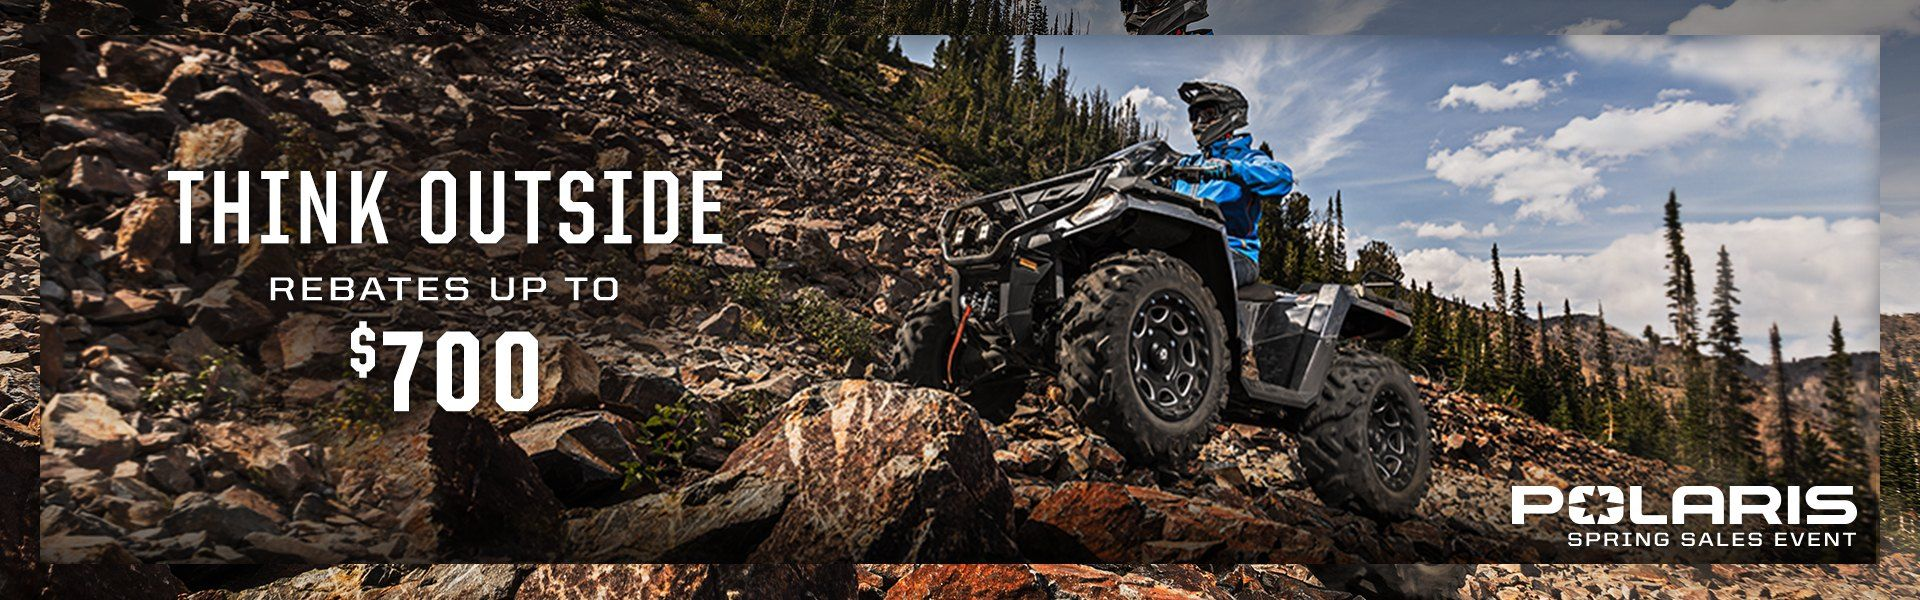 Polaris ATV Spring Sales Event